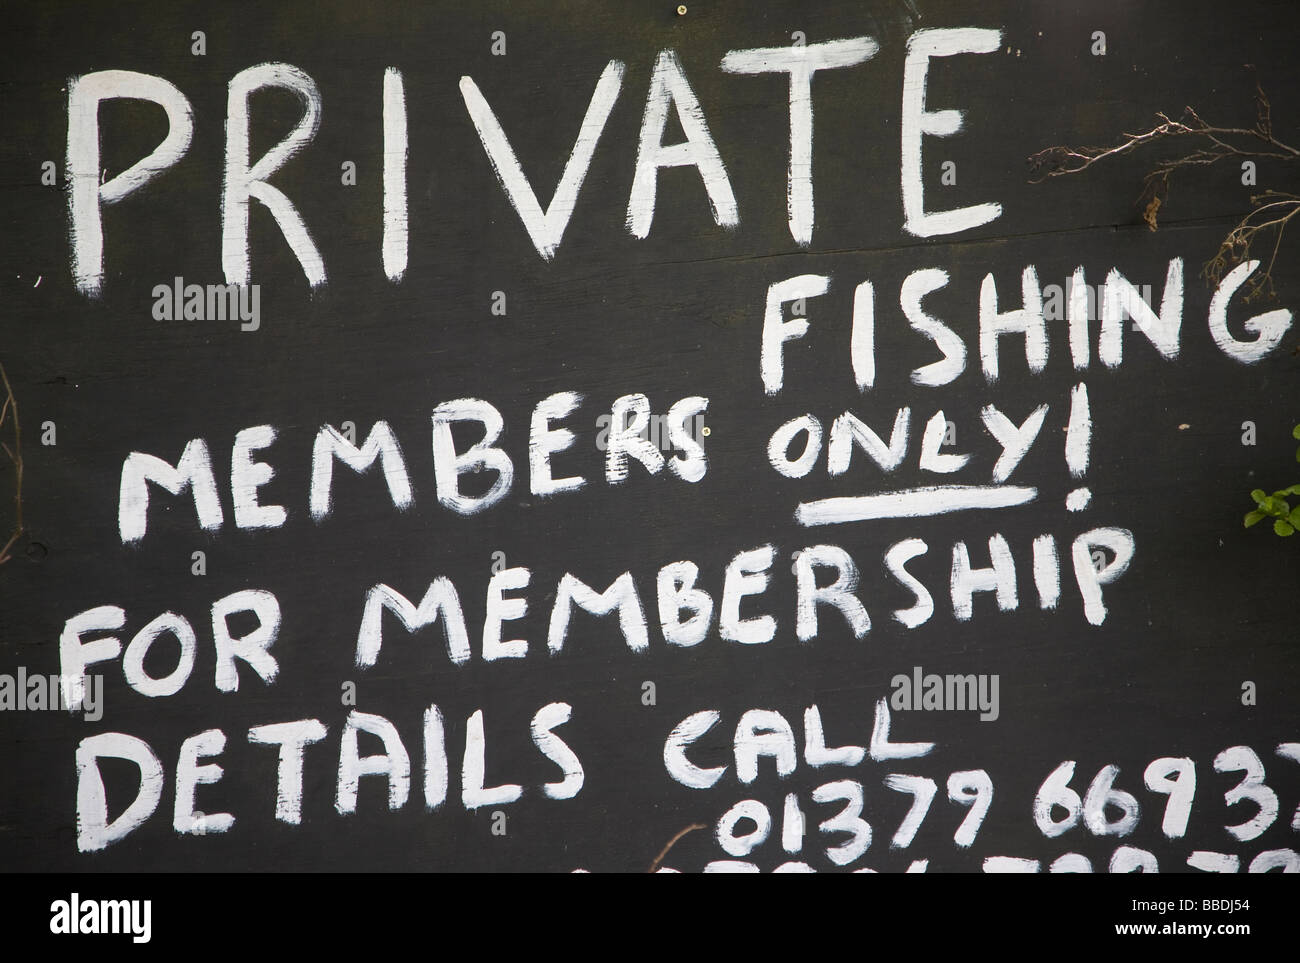 Private Fishing Members Only sign - Stock Image